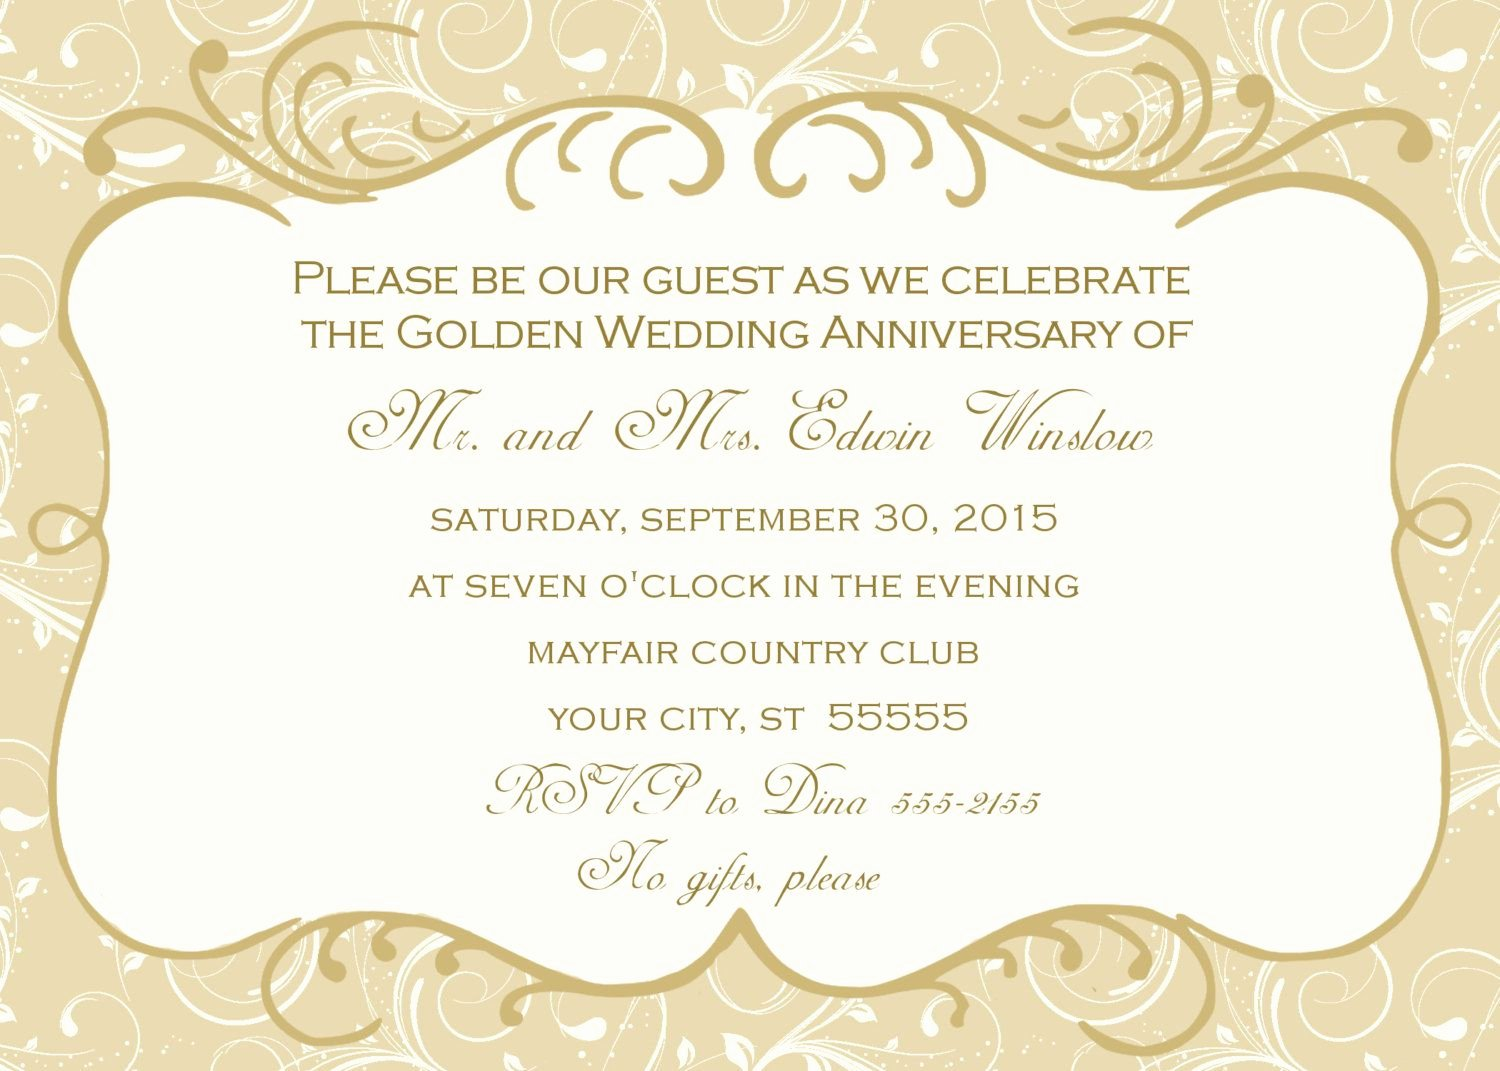 Wedding Anniversary Invite Template Elegant Golden Wedding Anniversary Invitation Golden Wedding